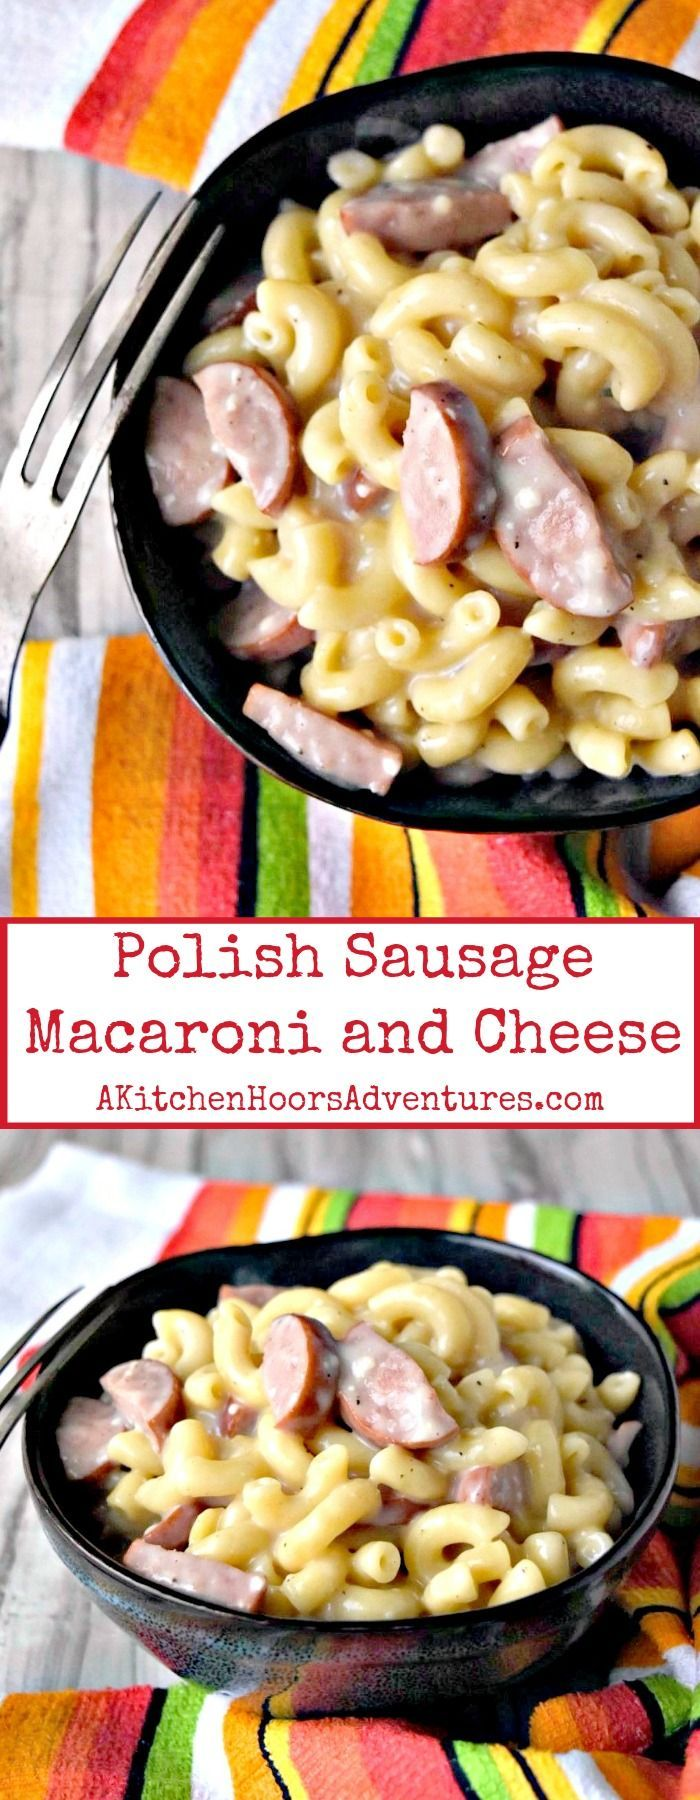 Polish sausage is sauteed and added to macaroni and cheese in one of my family f…